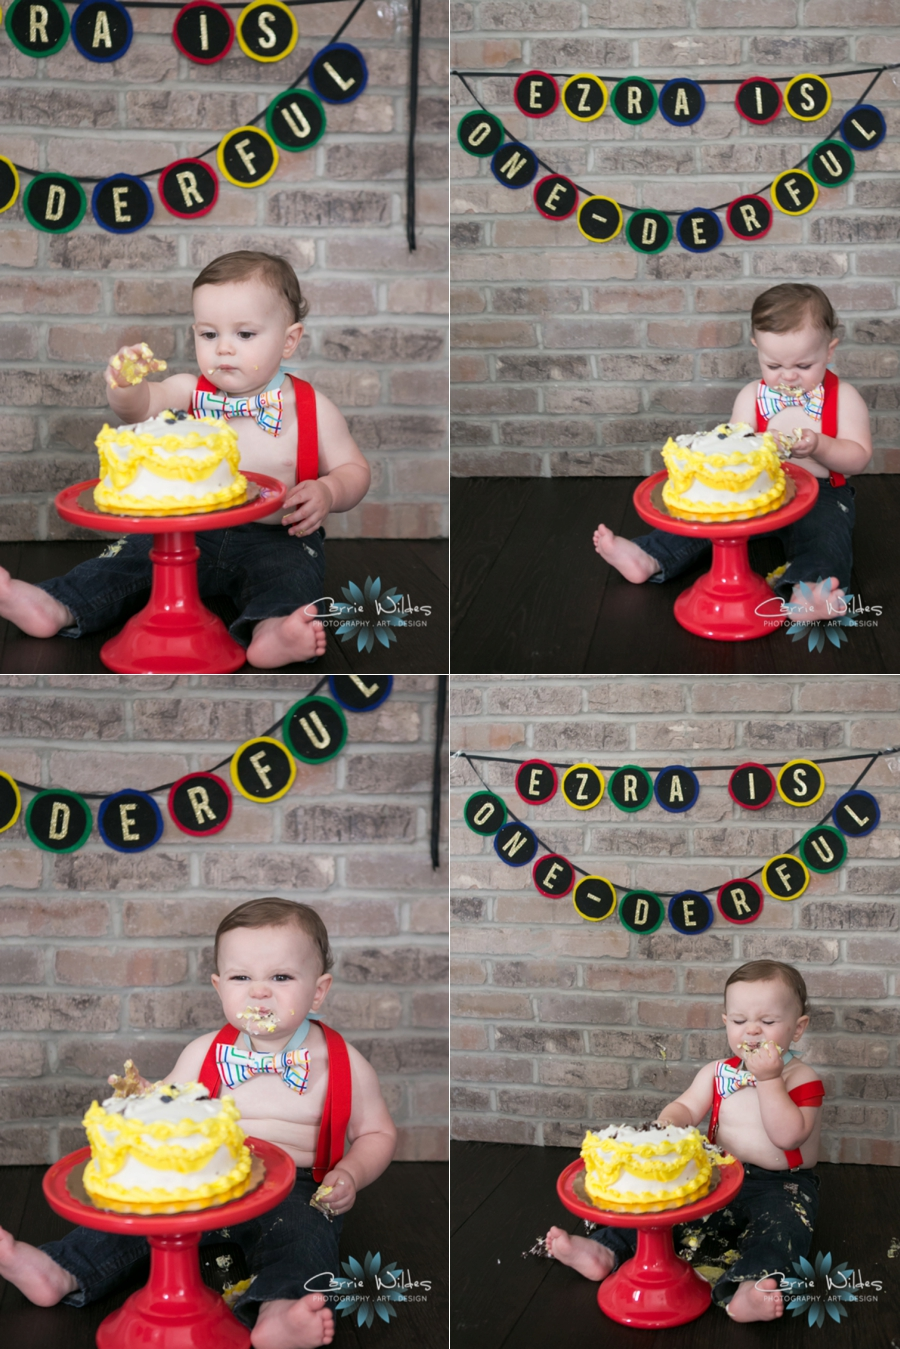 6_27_16 Tampa 1 year Old Cake Smash Portraits_0007.jpg